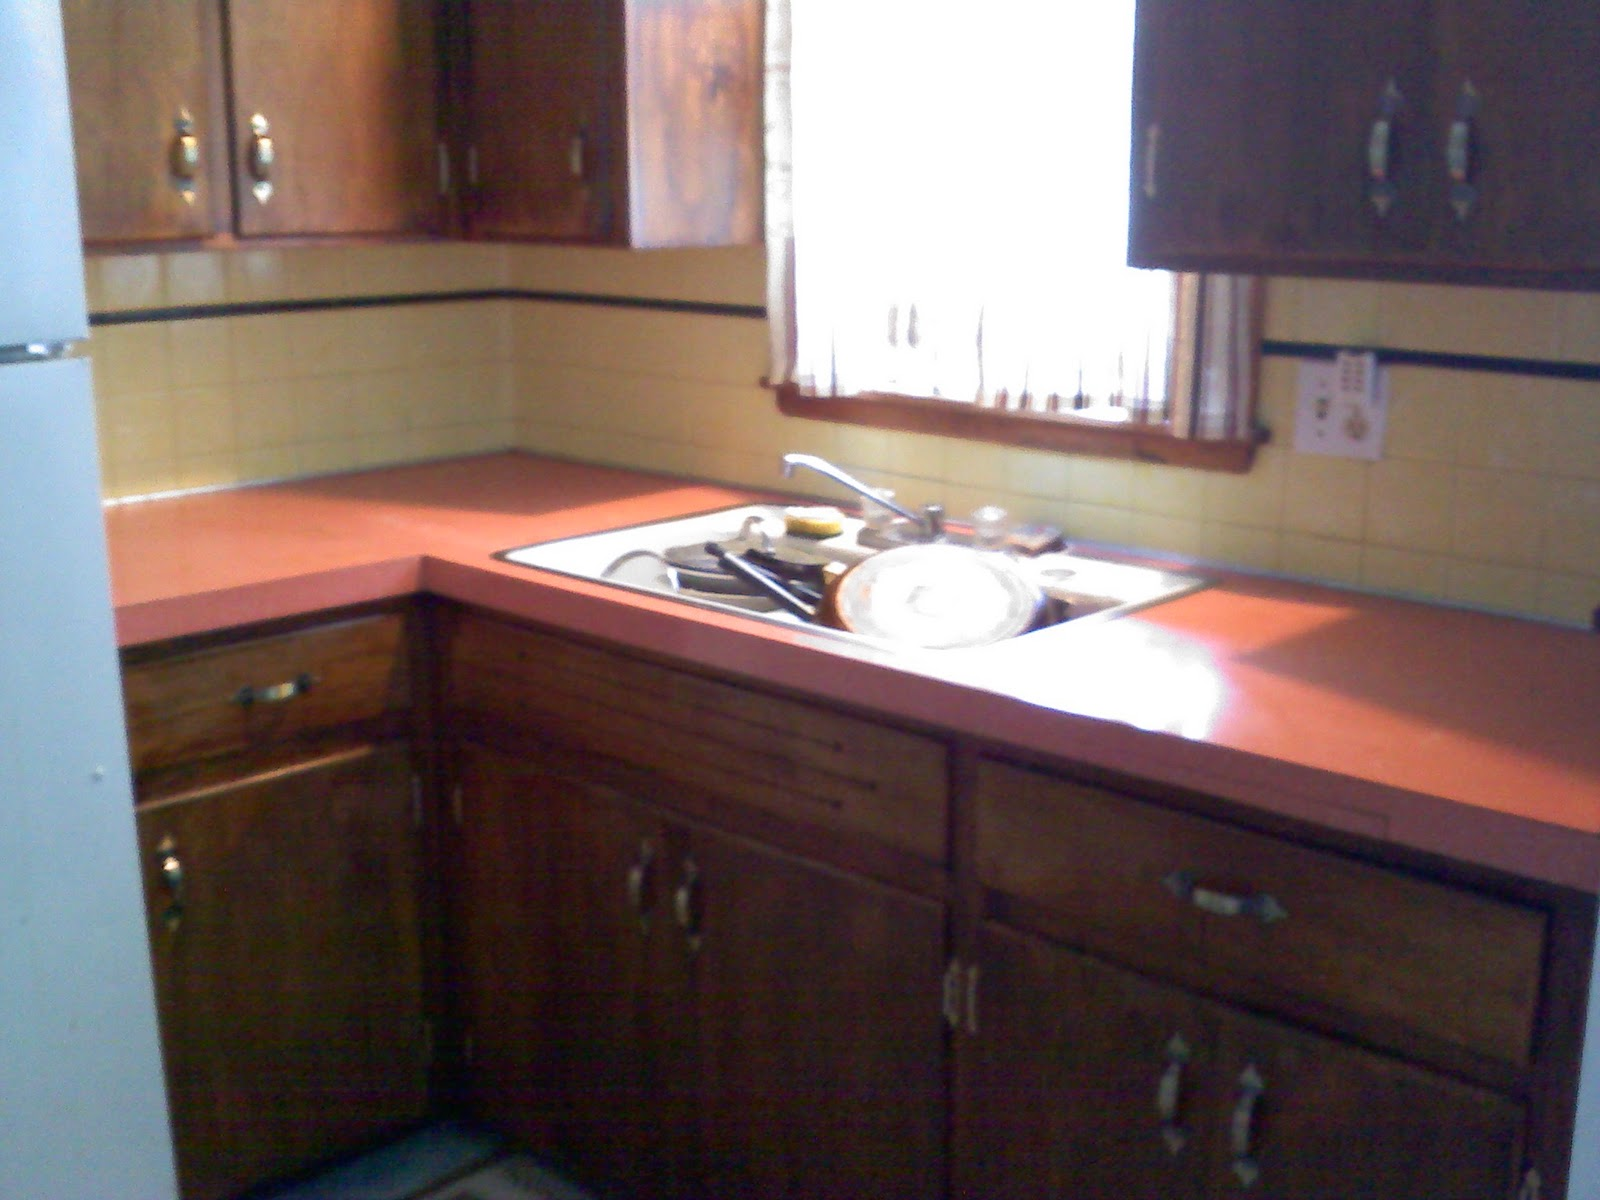 minimize rooms design kitchen your replace country to cost countertops hgtv granite how countertop for contemporary kitchens